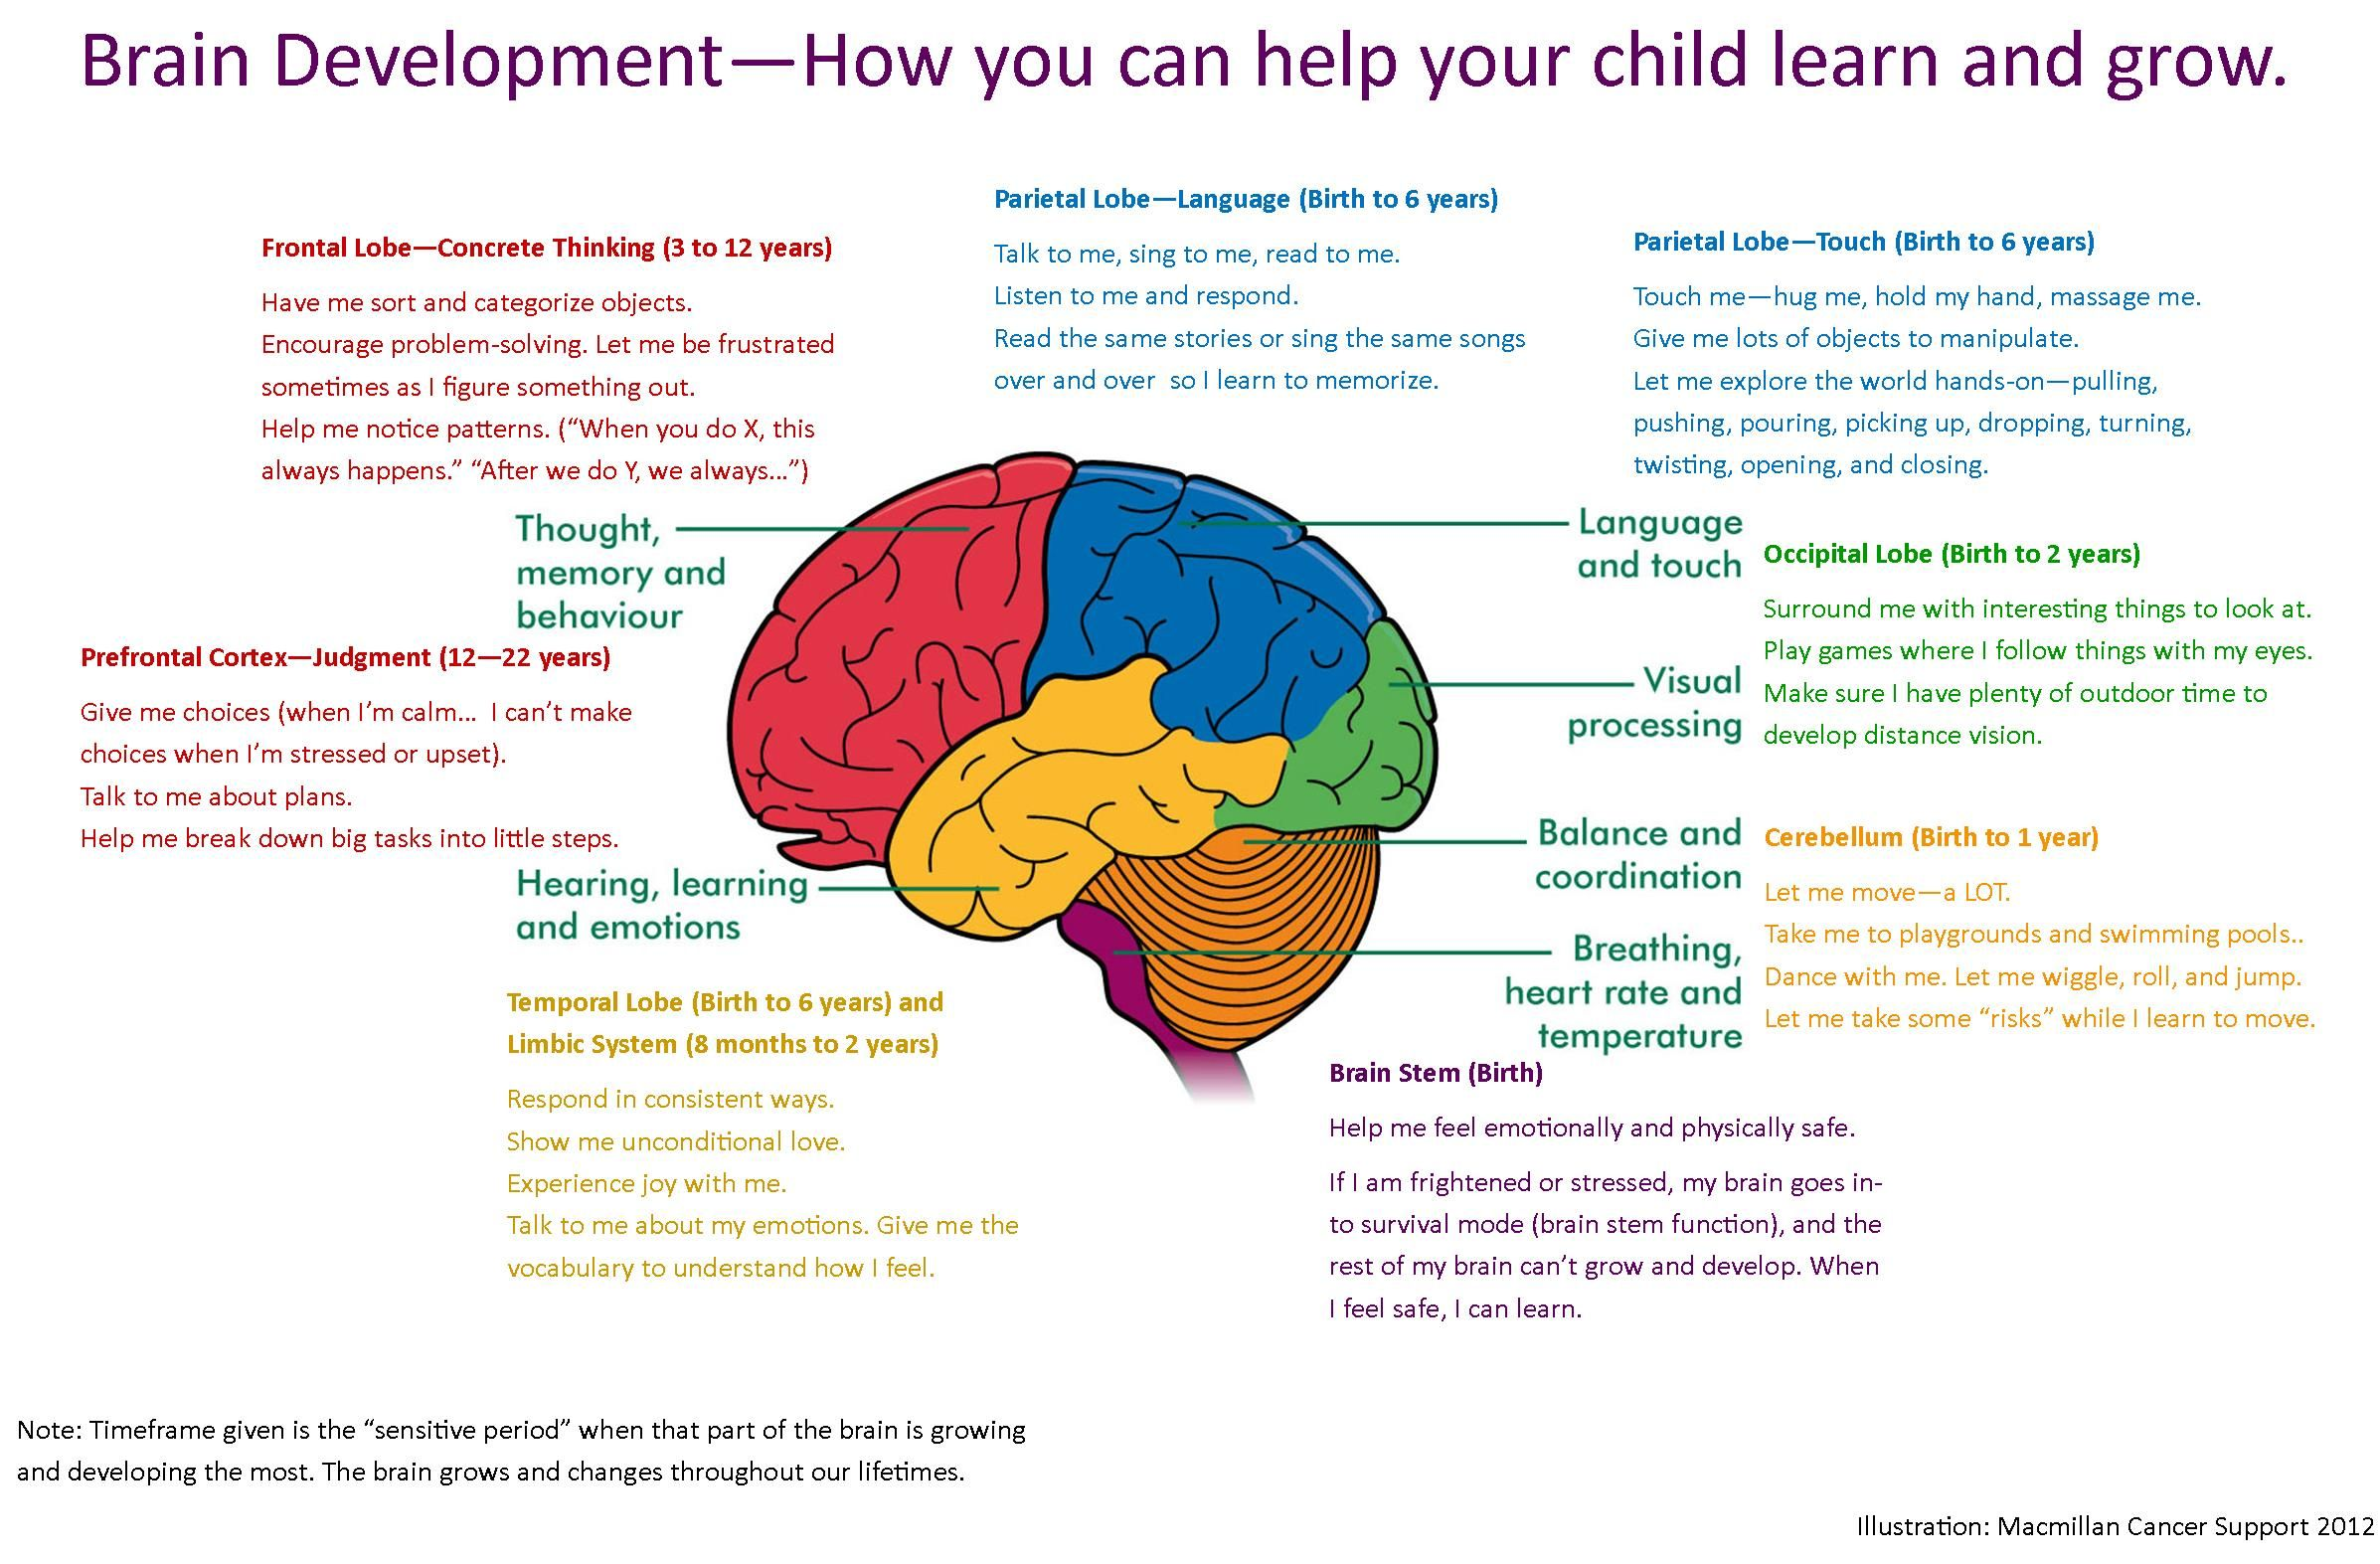 Brain Development How To Help Your Child Learn And Grow